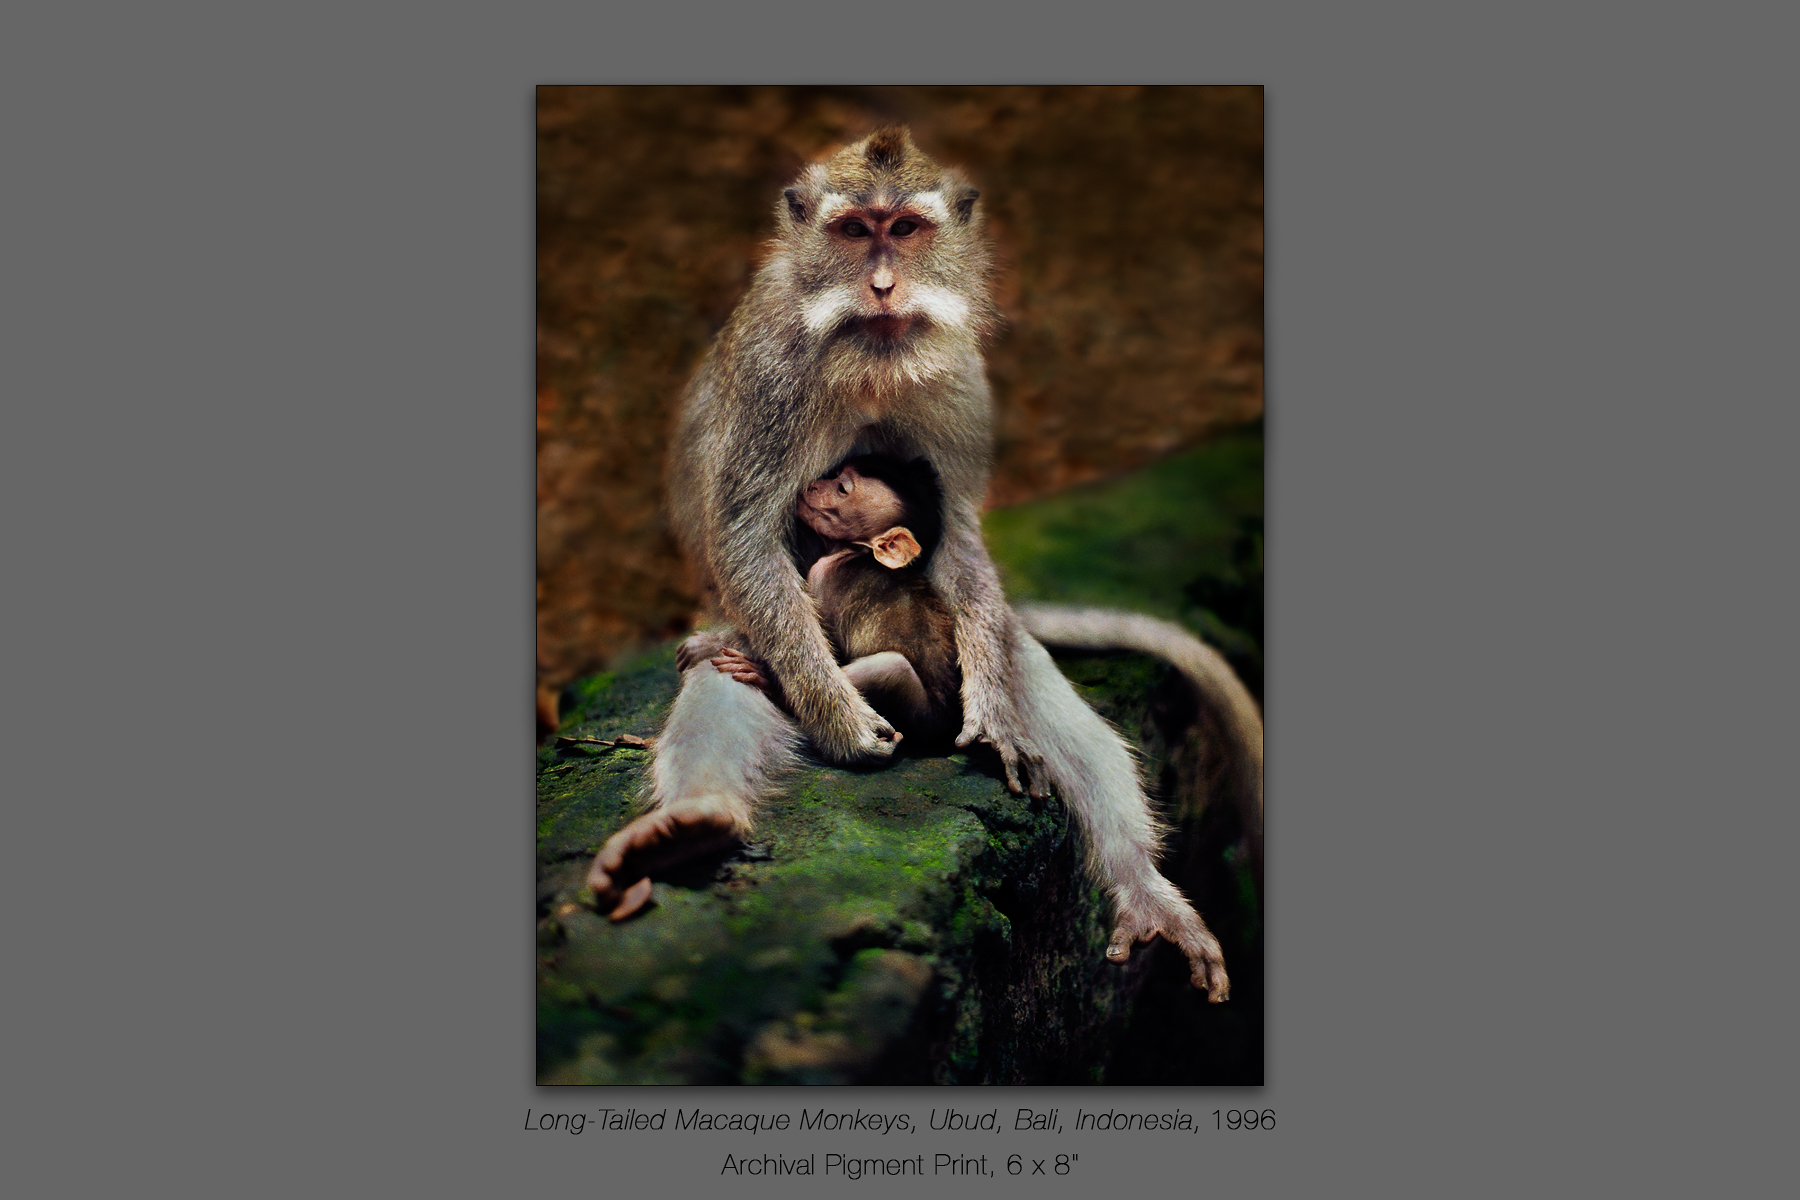 Long-Tailed Macaque Monkeys, Ubud, Bali, Indonesia, 1996